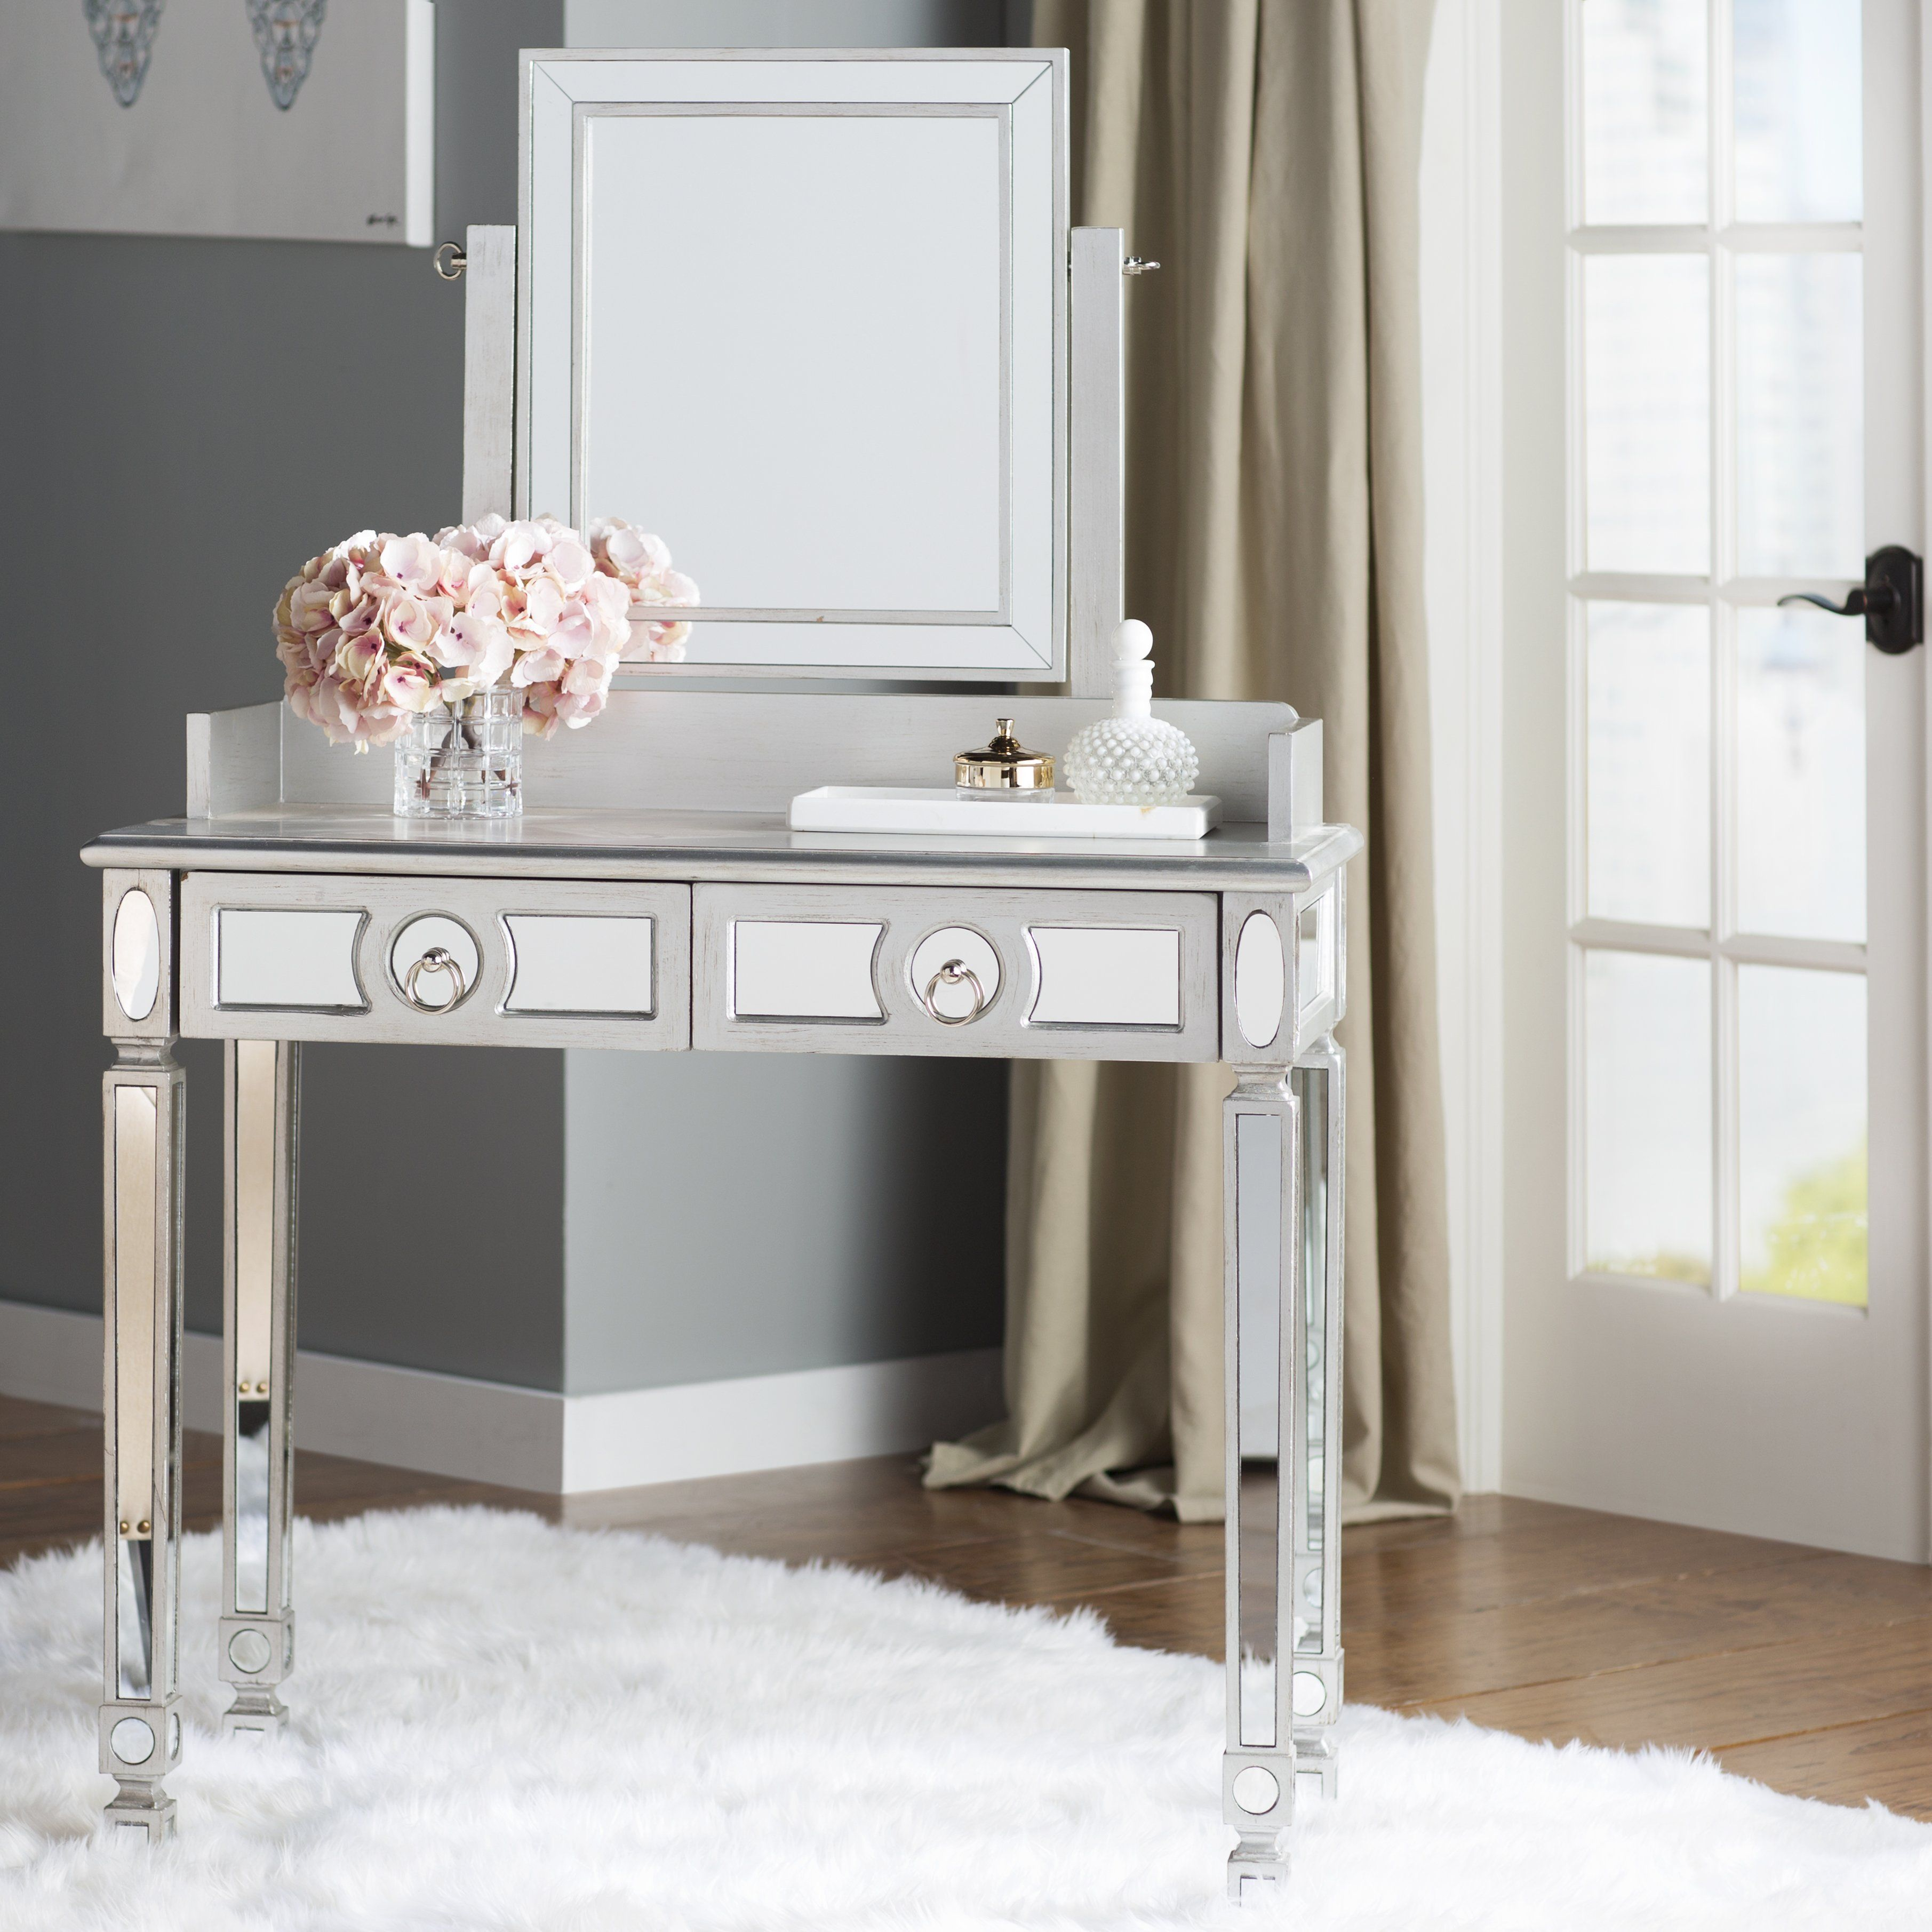 how paint ashley glossy also around and serena vanity it actaully lily modern actually more makeup loved the space new love classic mirror bamboo with ojai designed white i motif silhouette makes